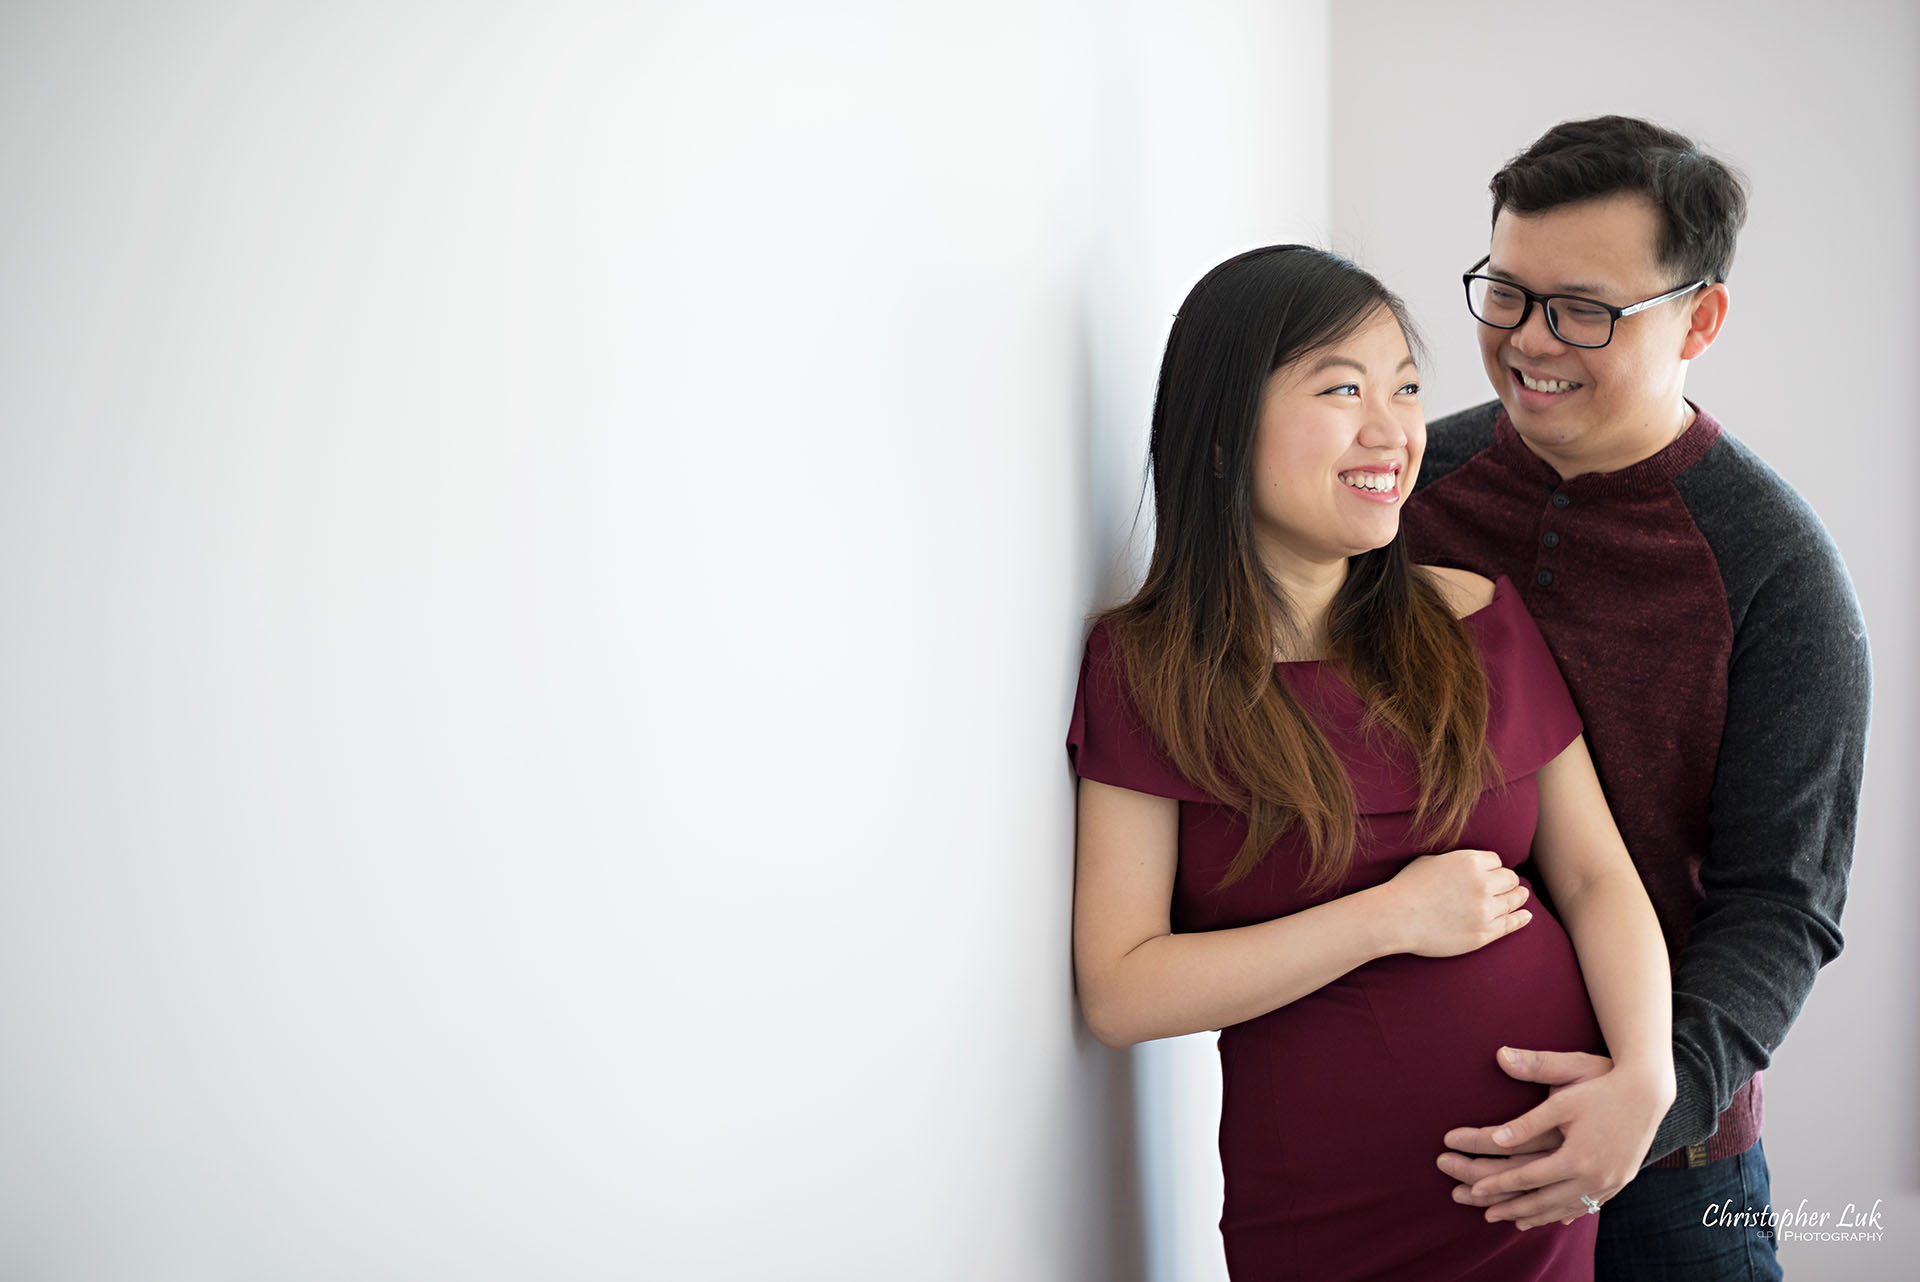 Karen and Elton's Maternity Session – Toronto & Markham Family Photographer